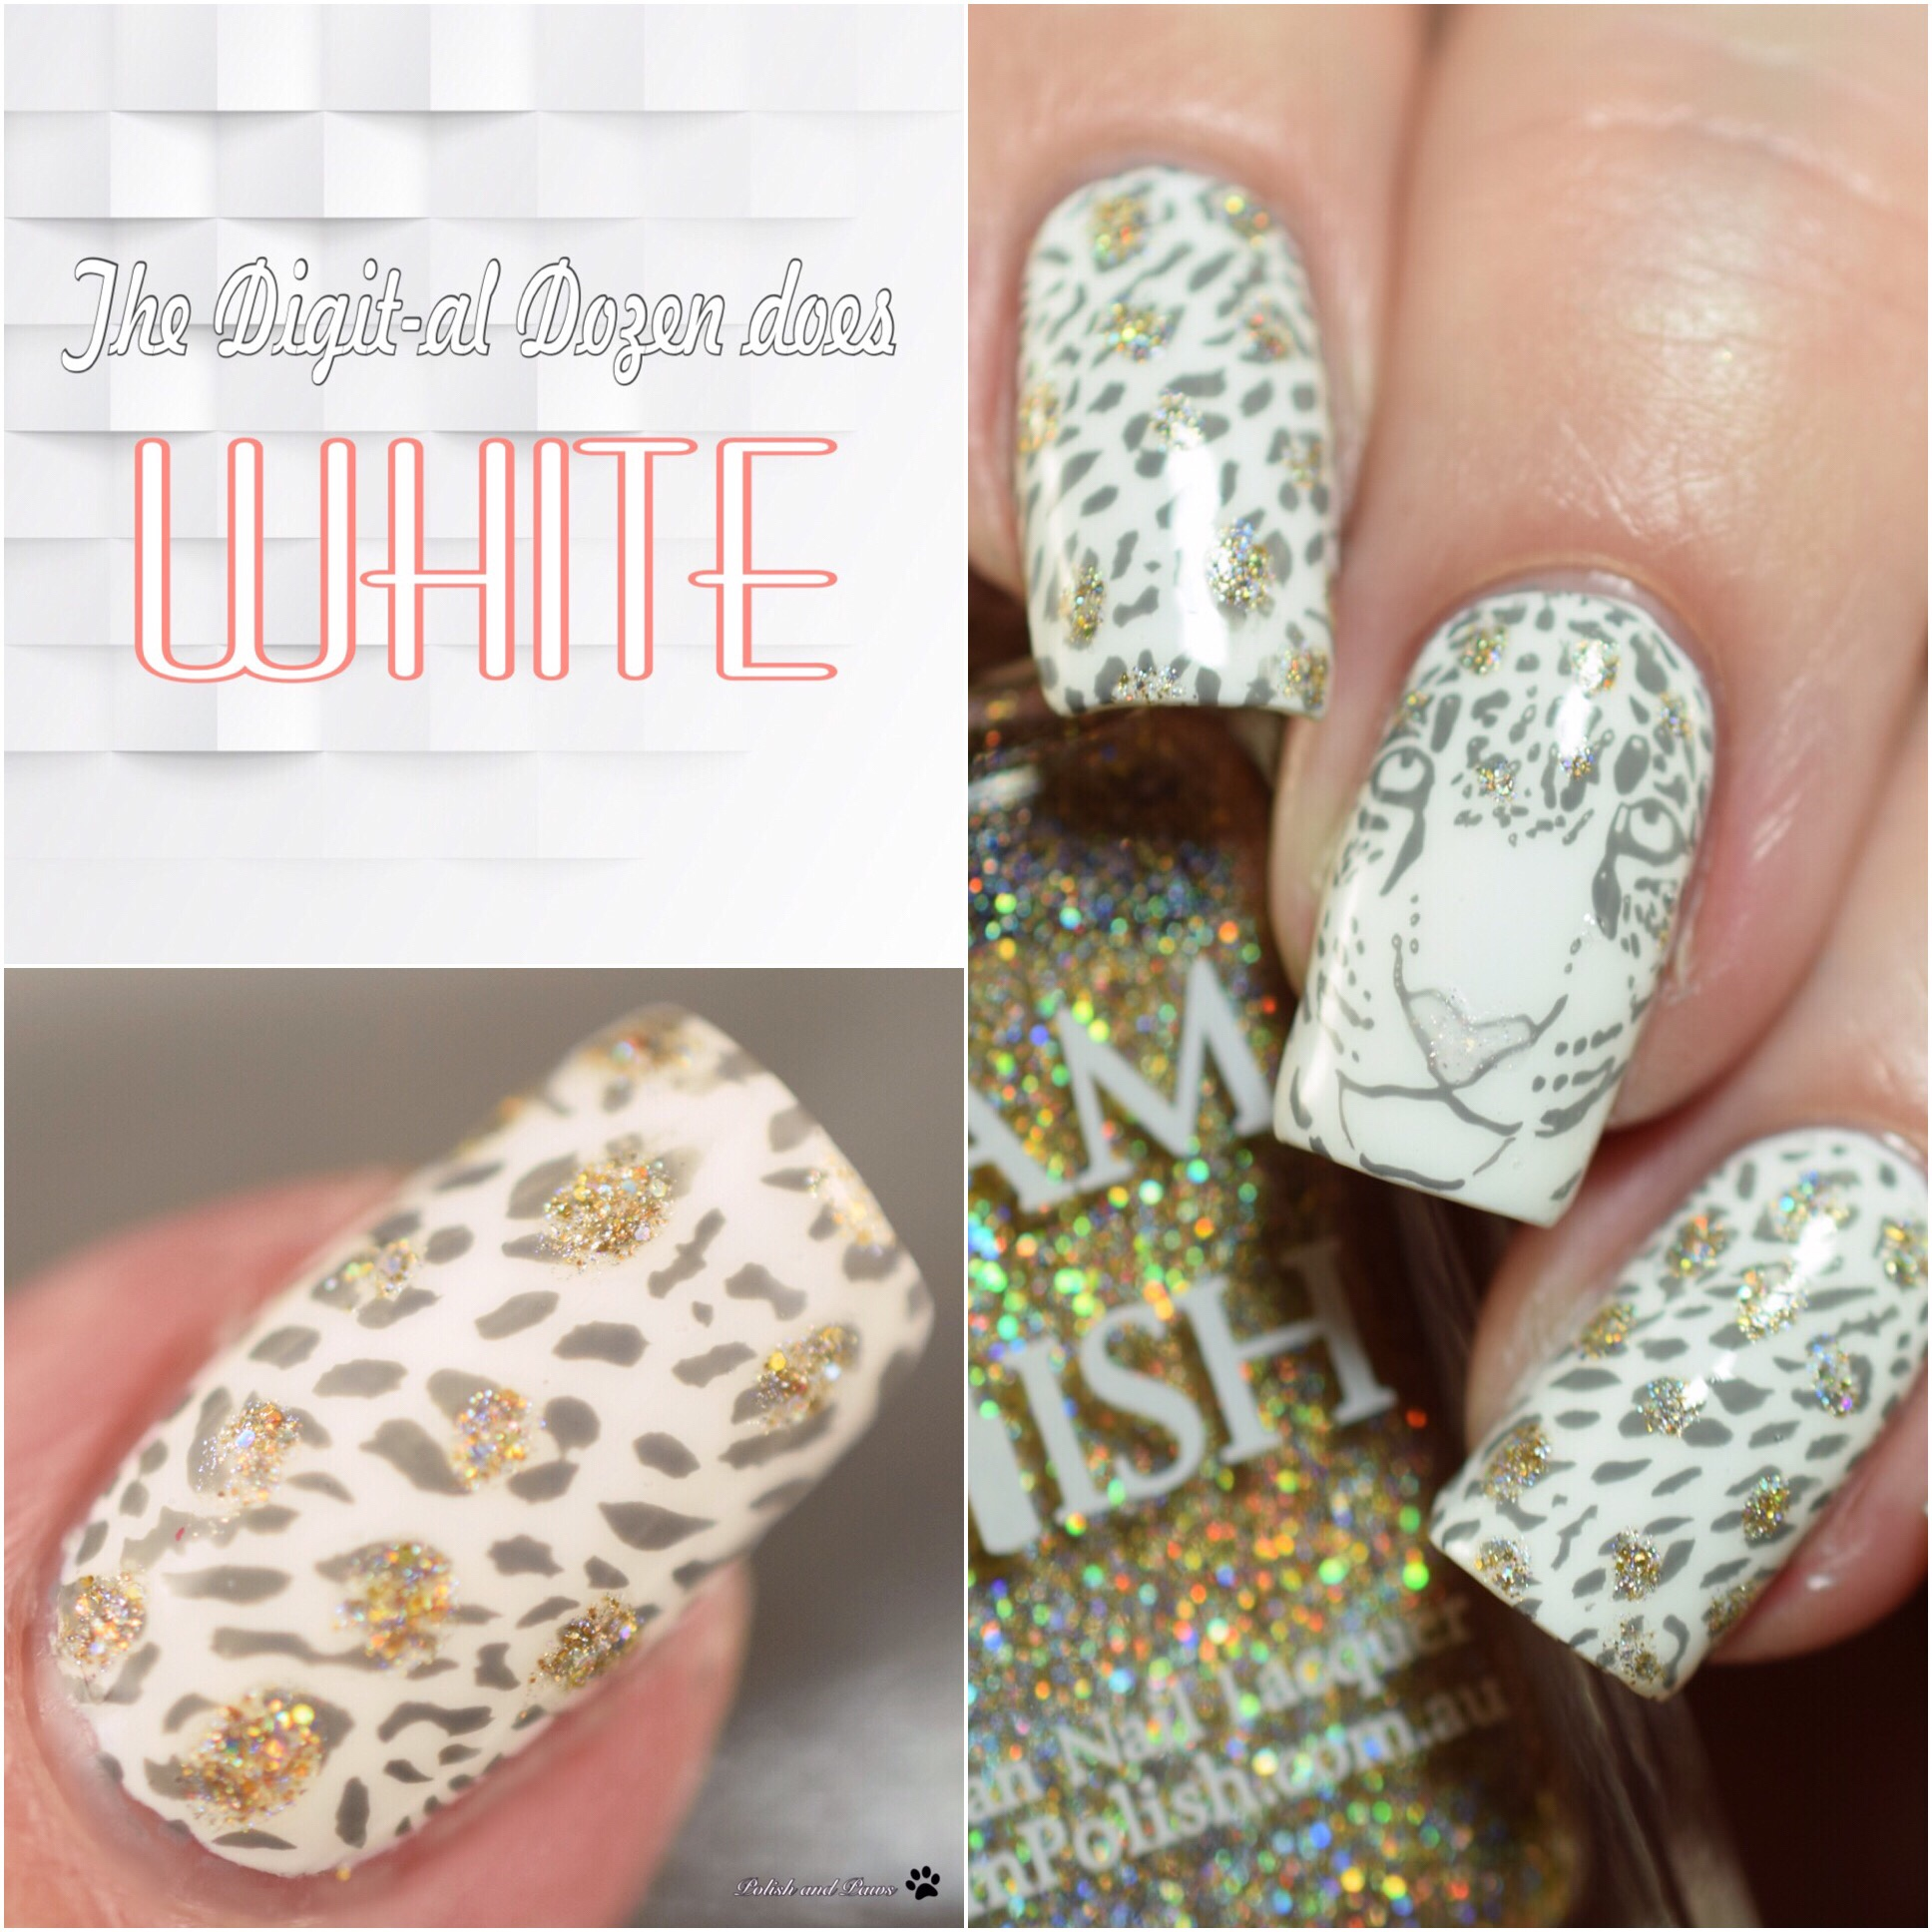 The Digit-al Dozen does White: Leopard